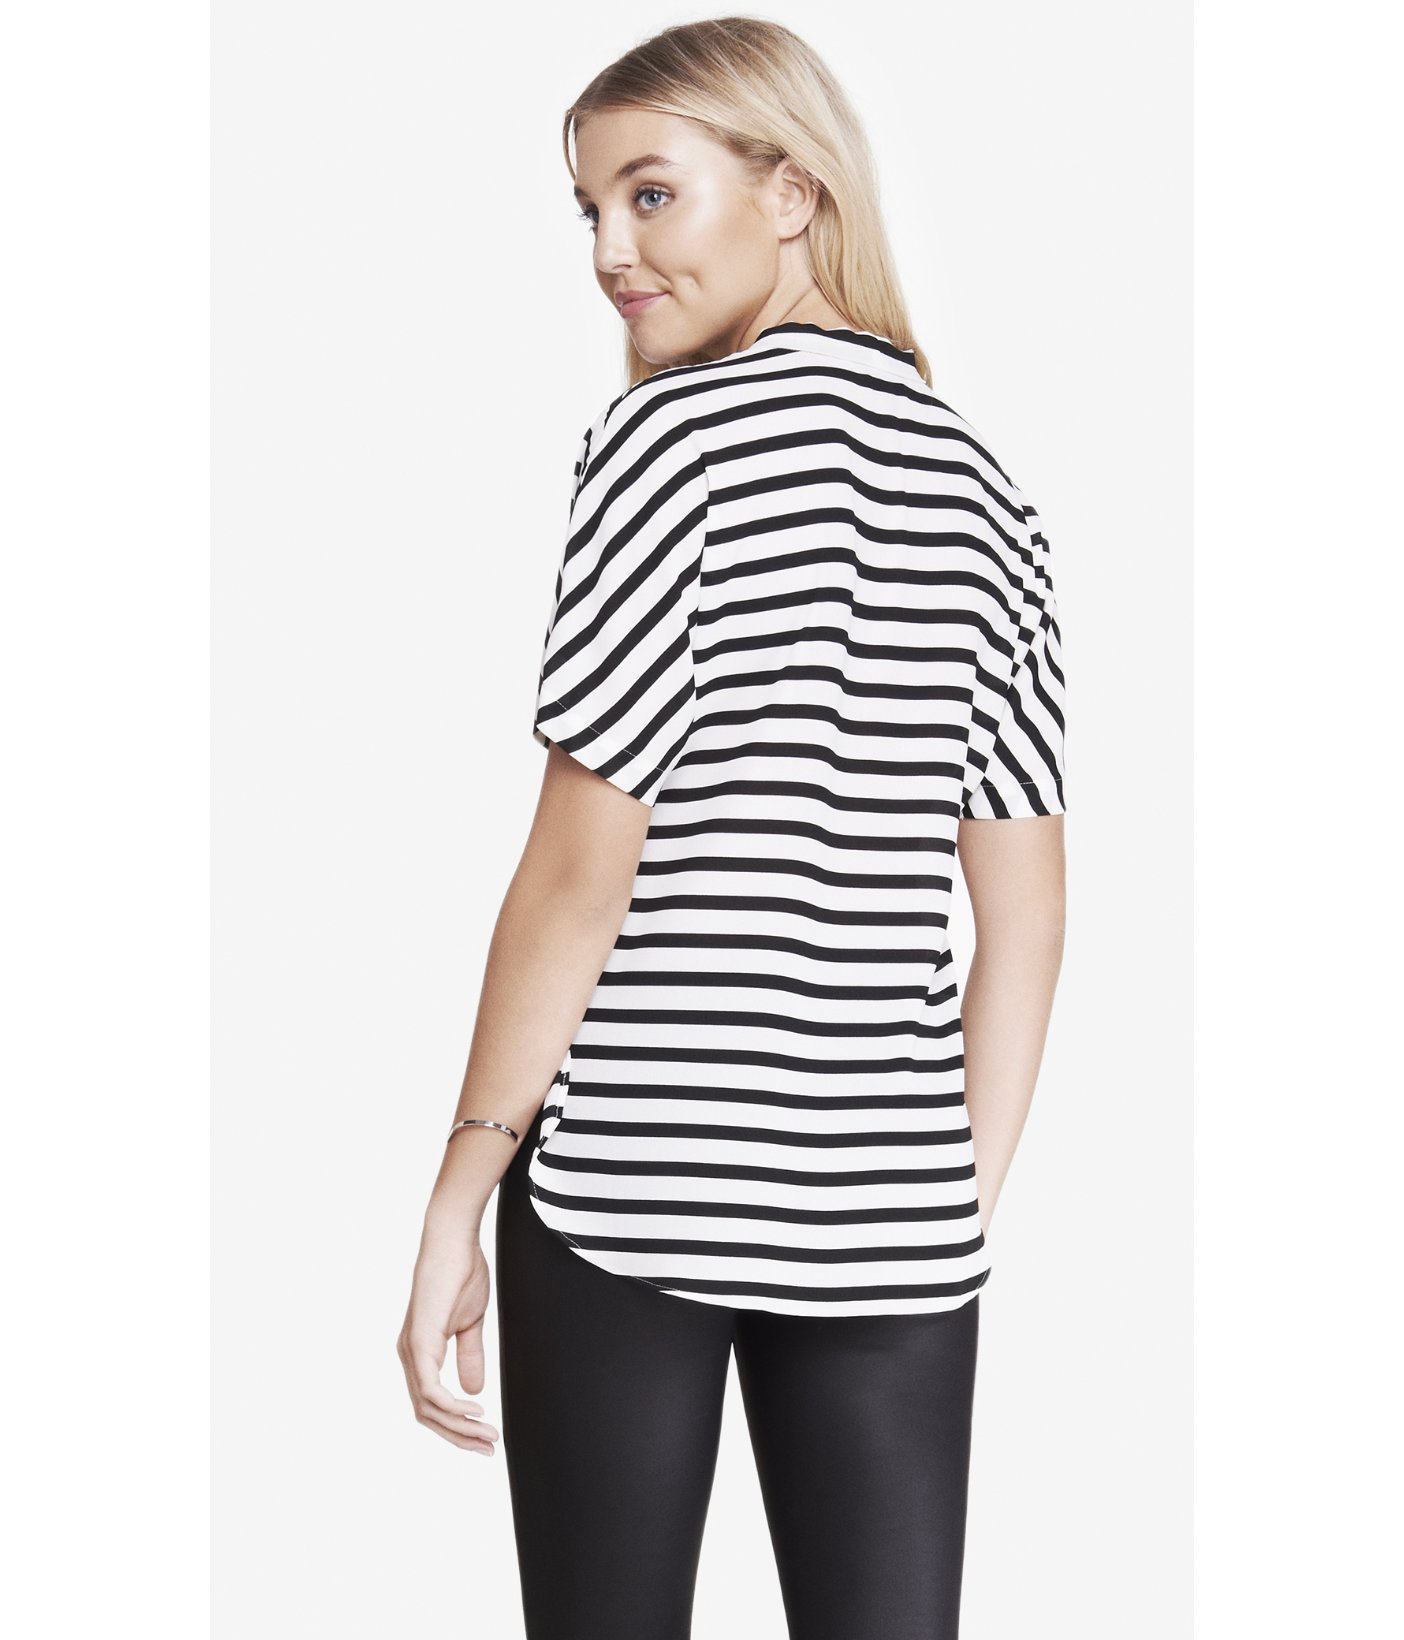 Lyst express striped tie front top in black for Express shirt and tie